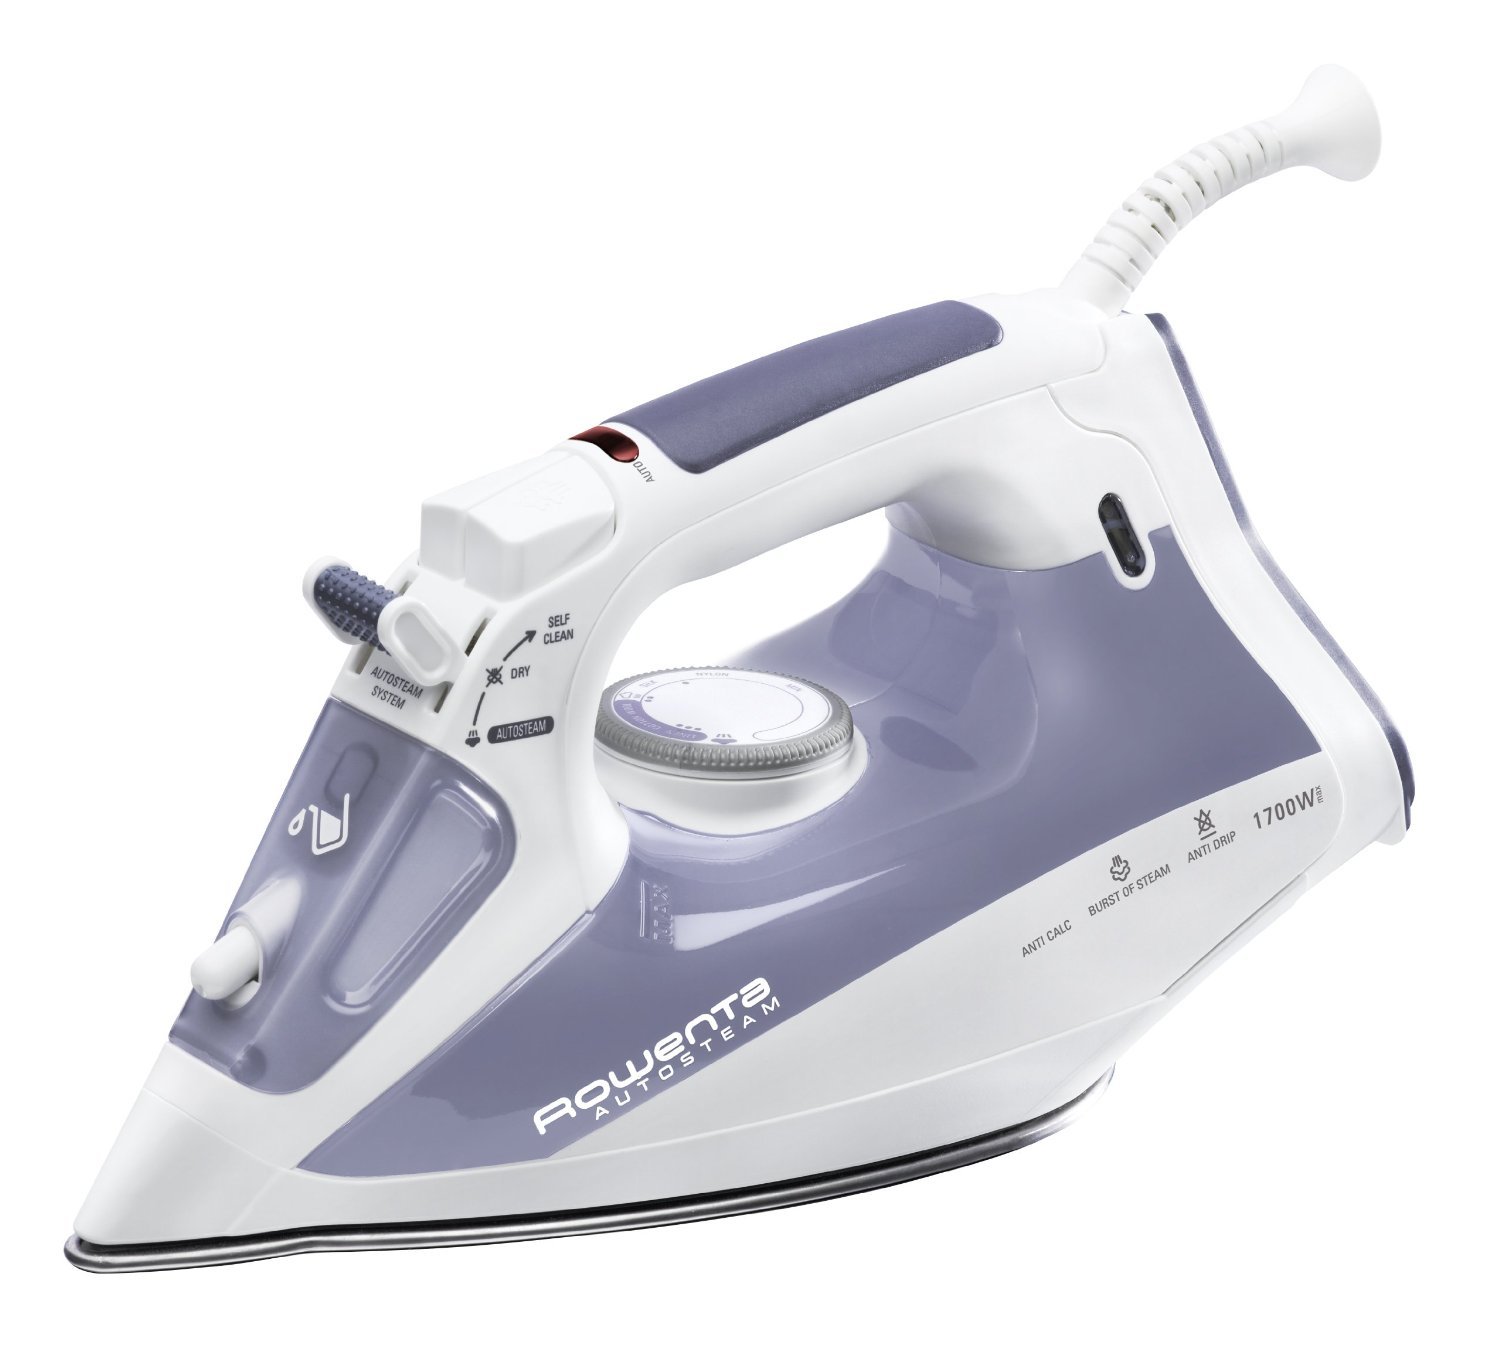 rowenta dw4060 review great auto steam iron. Black Bedroom Furniture Sets. Home Design Ideas